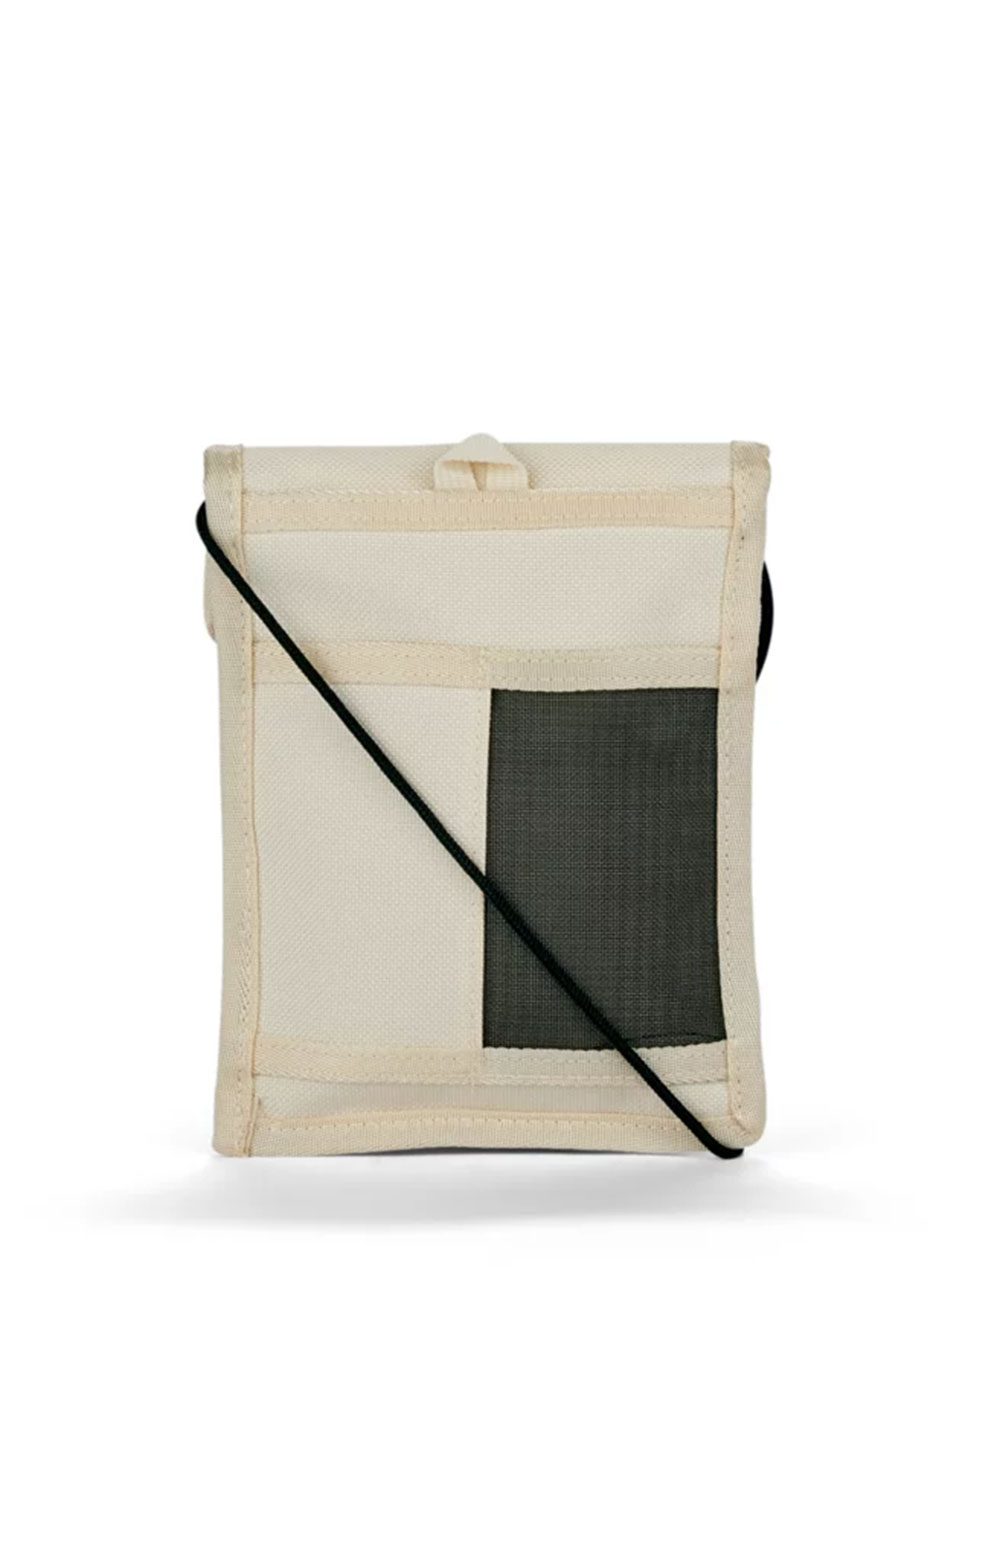 Essential Carryall - Coconut 2